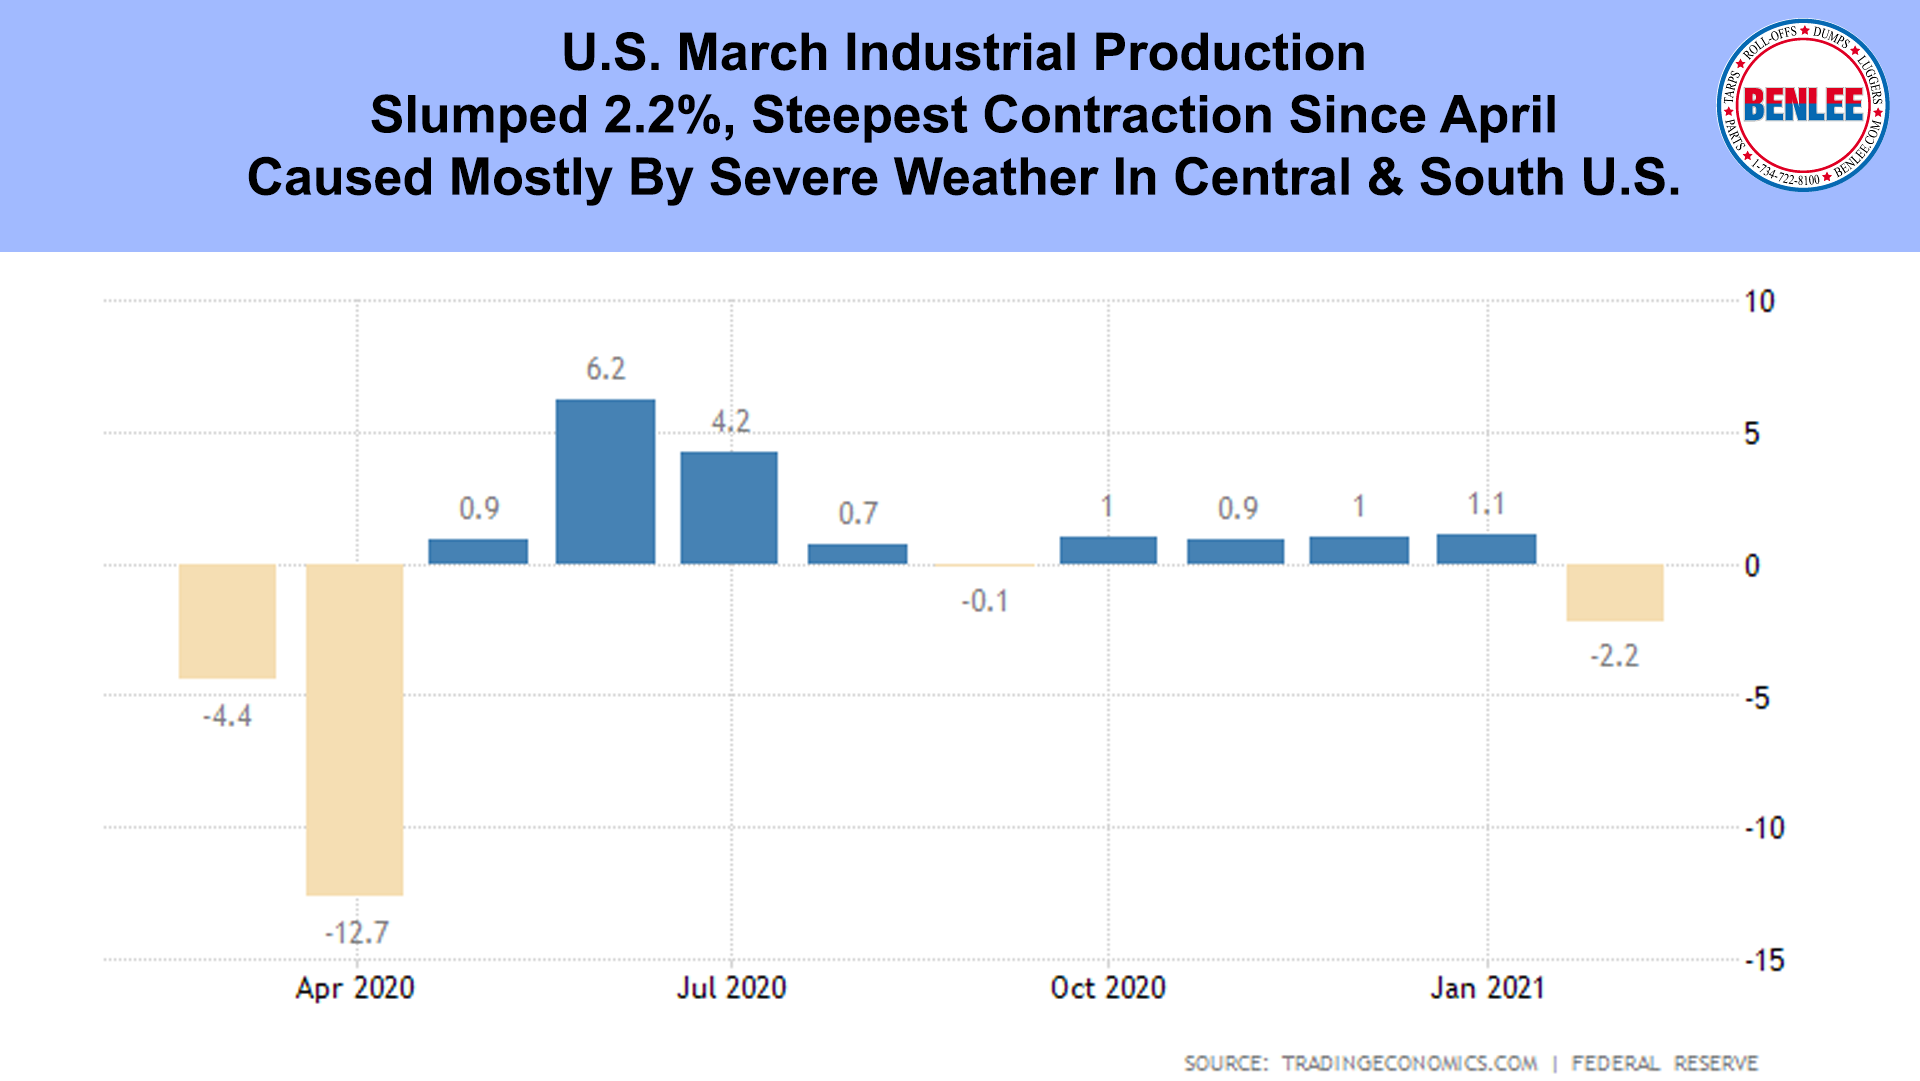 U.S. March Industrial Production